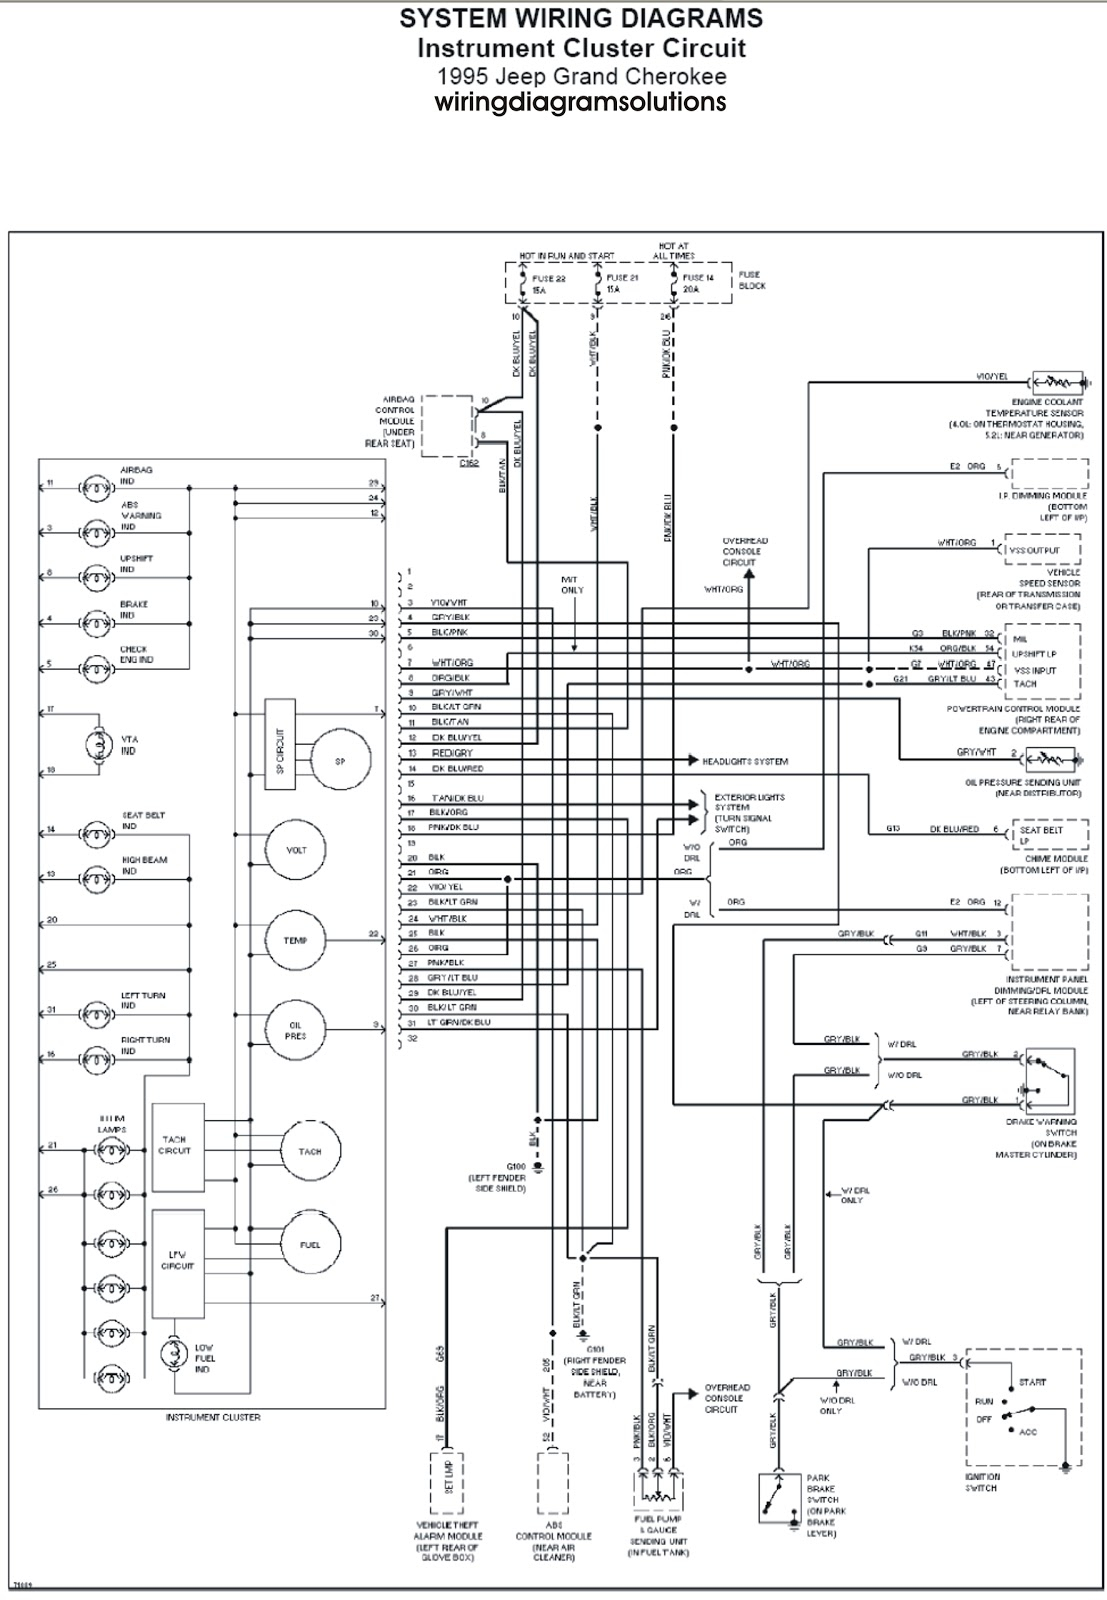 97 Jeep Ecm Wiring | Wiring Schematic Diagram - pokesoku.co  Jeep Cherokee Pcm Wiring Diagram on